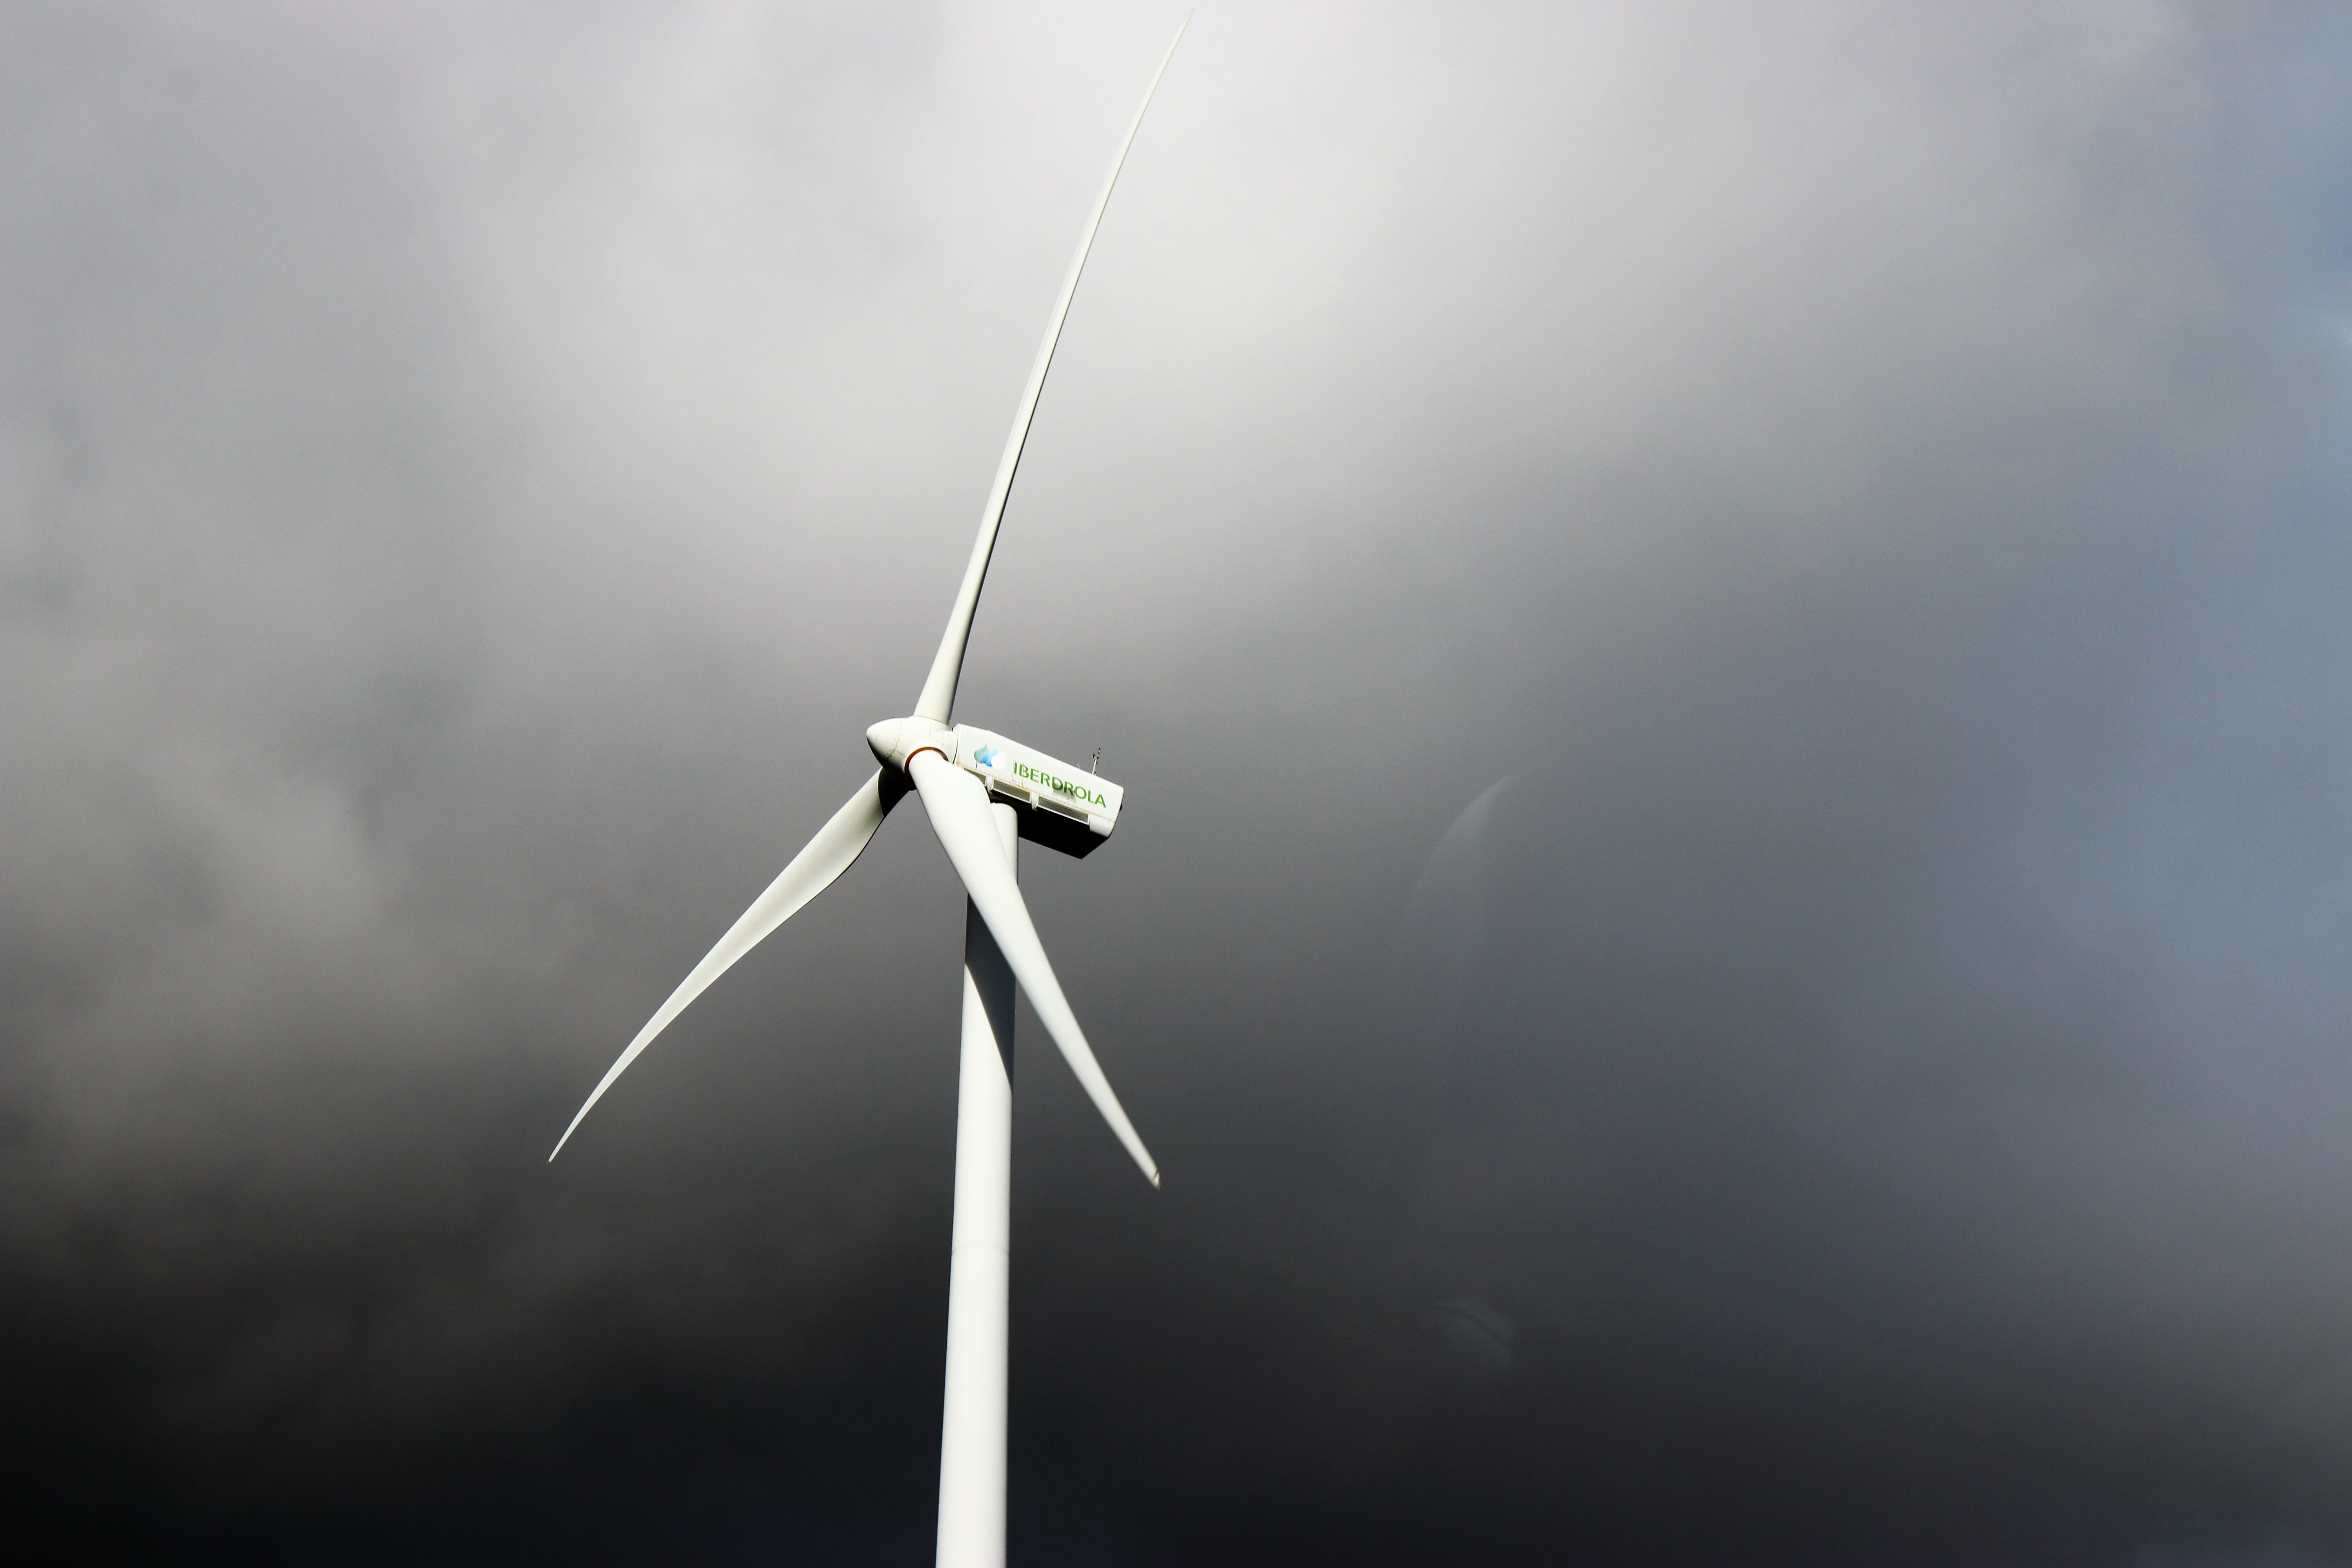 White Windmill Under Gray Cloudy Sky